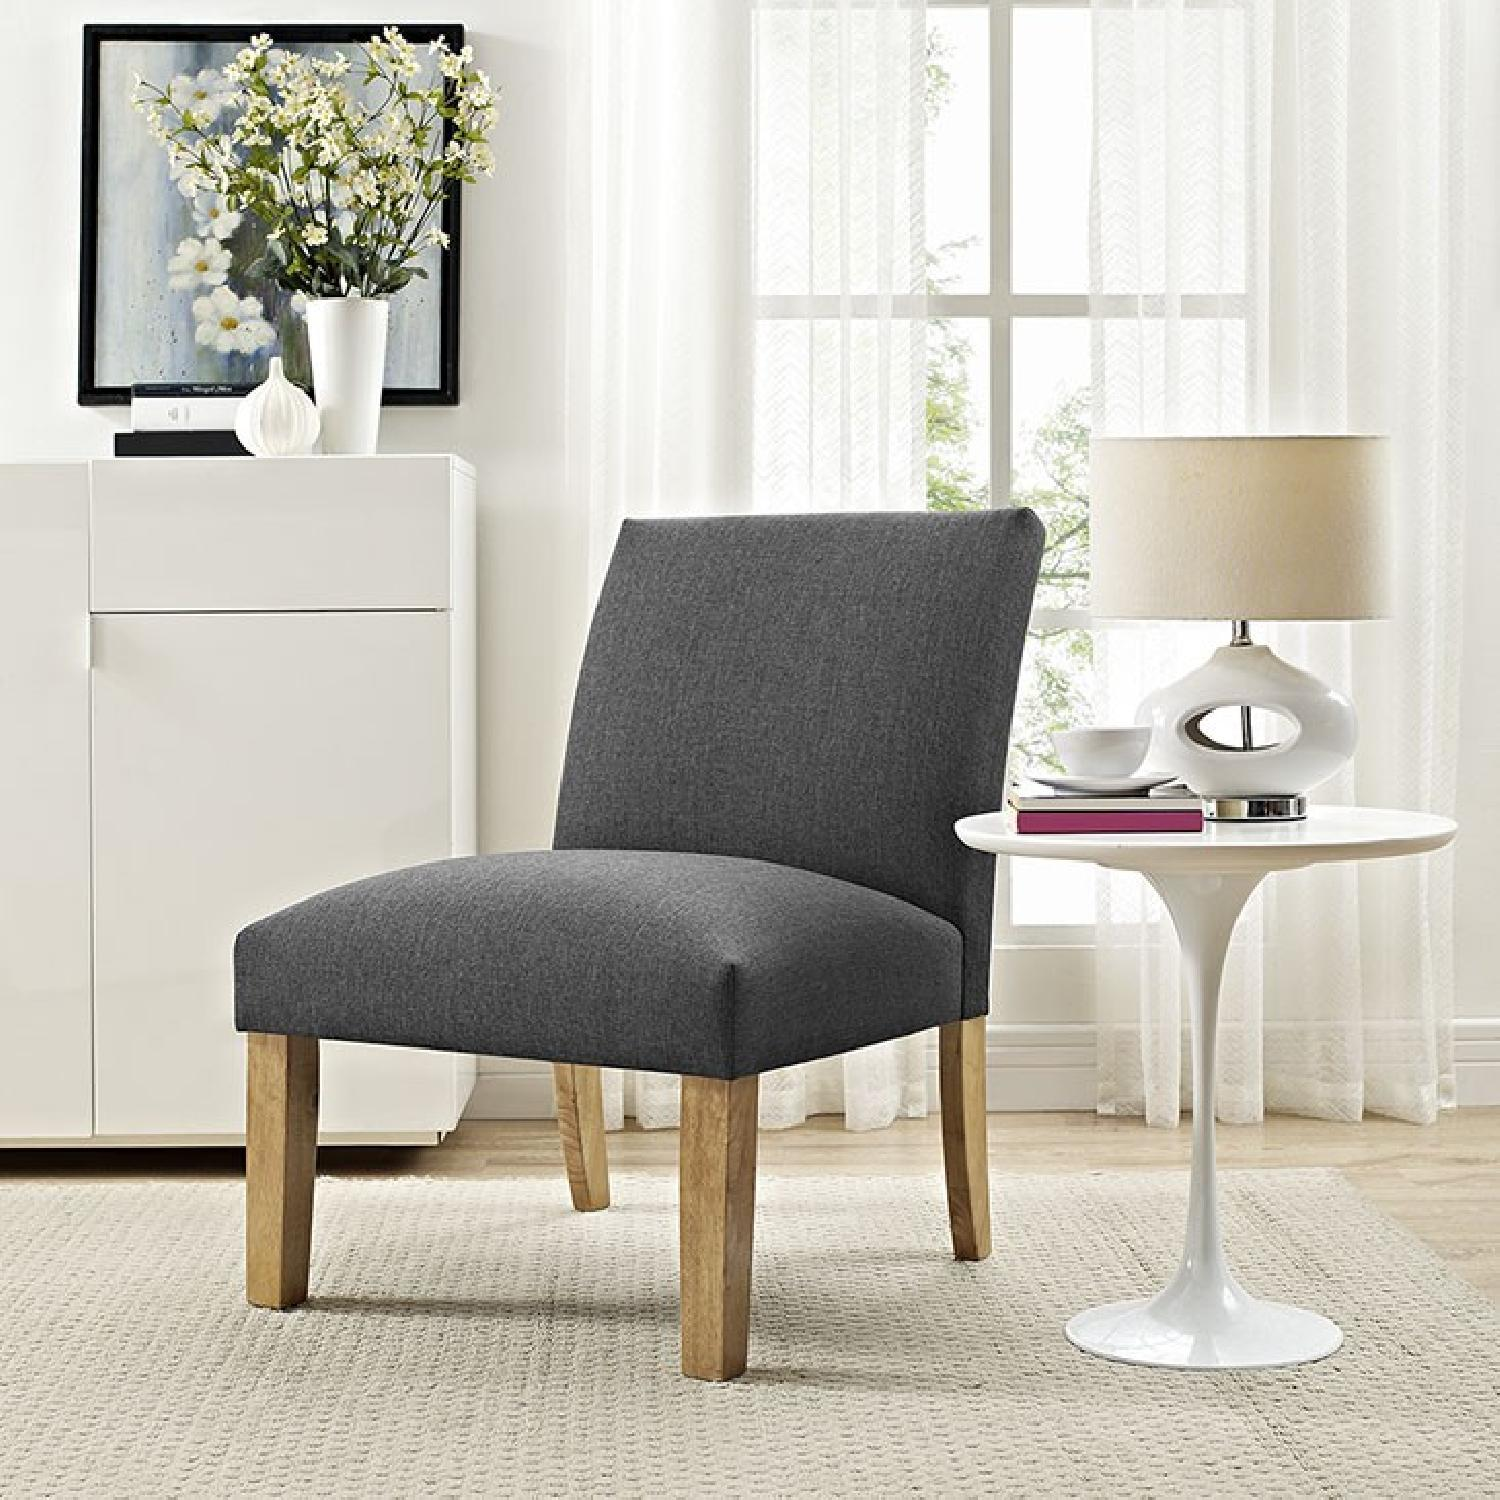 Grey Accent Chair - image-1